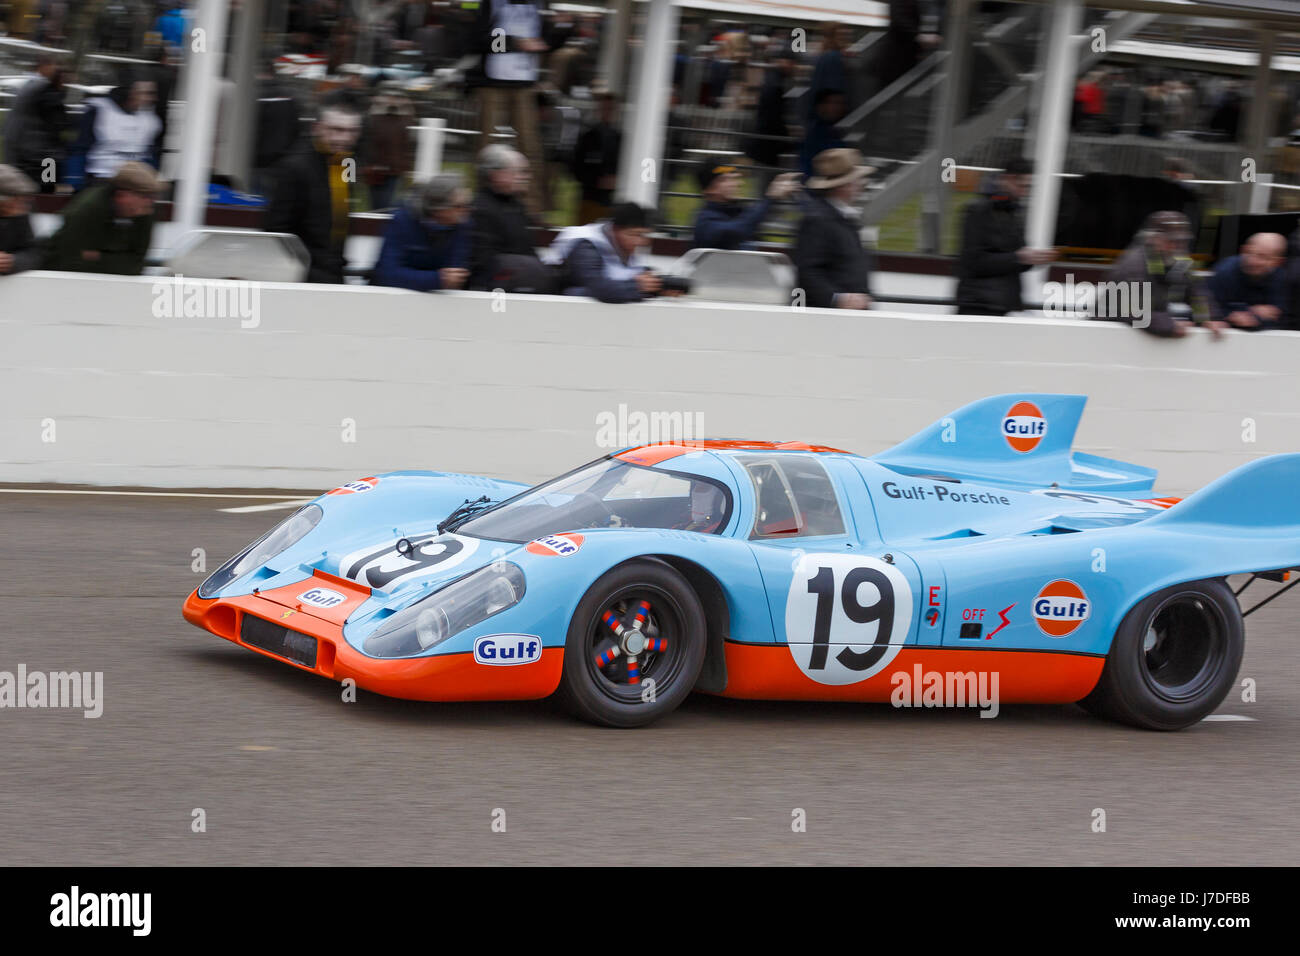 1971 Porsche 917K Group 5 car with driver Richard Attwood at the Goodwood GRRC 74th Members Meeting, Sussex, UK. - Stock Image